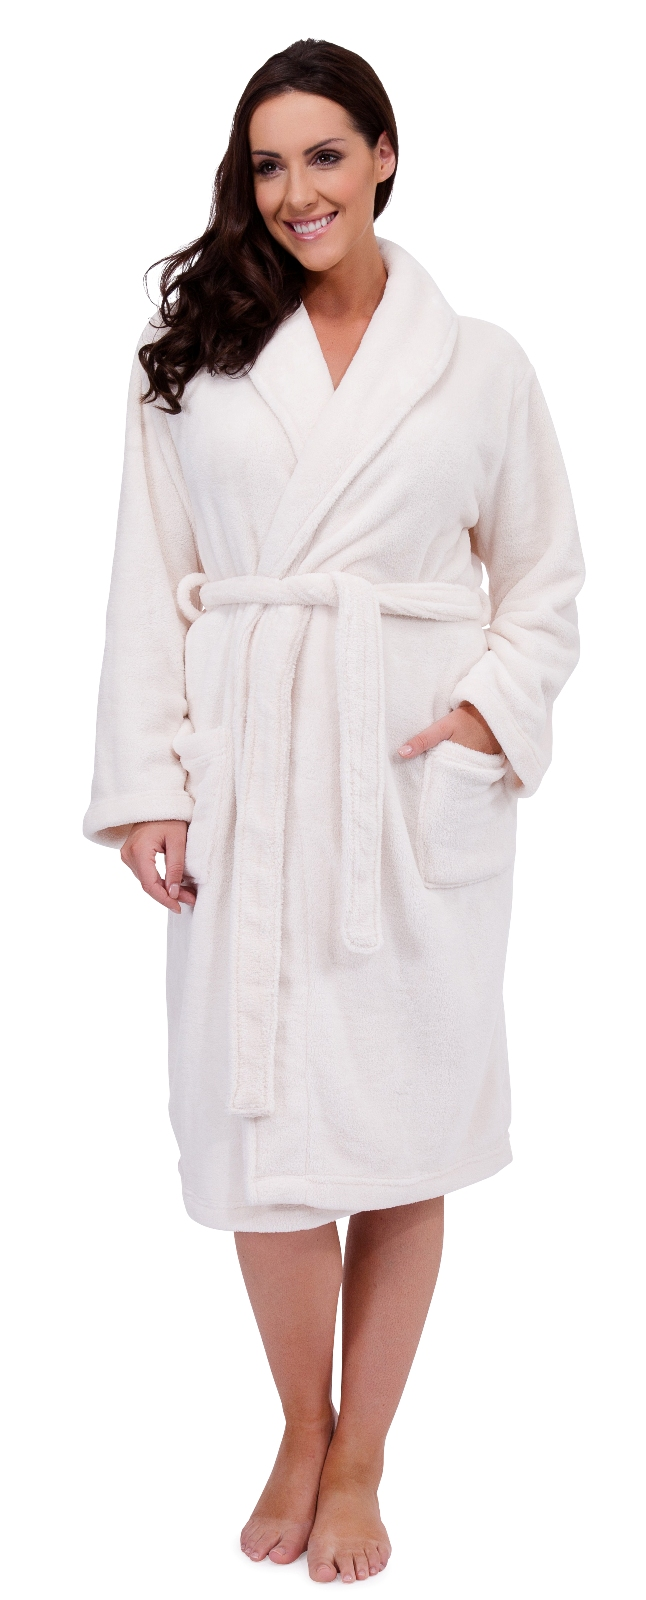 Established in , Bown of London is Great Britain's largest supplier of luxury bathrobes designed in the UK and we are proud of our reputation as the 'Rolls Royce' of Men's bathrobes. At Bown of London, we are passionate about quality, style and comfort.